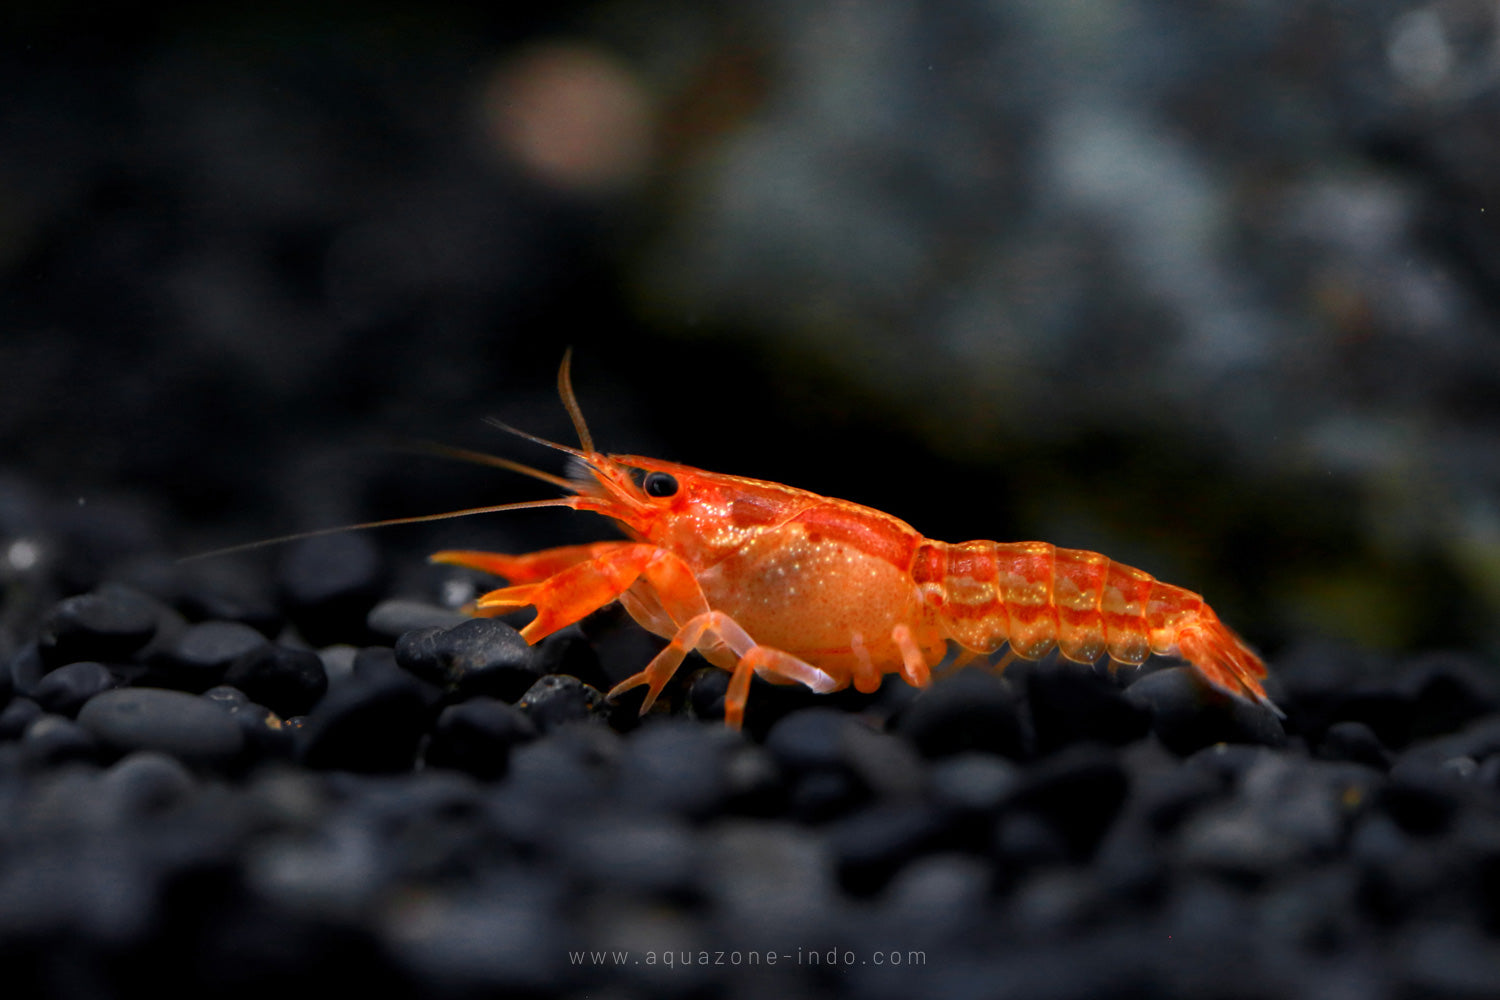 Orange CPO Dwarf Crayfish (Cambarellus patzcuarensis var. 'Orange')